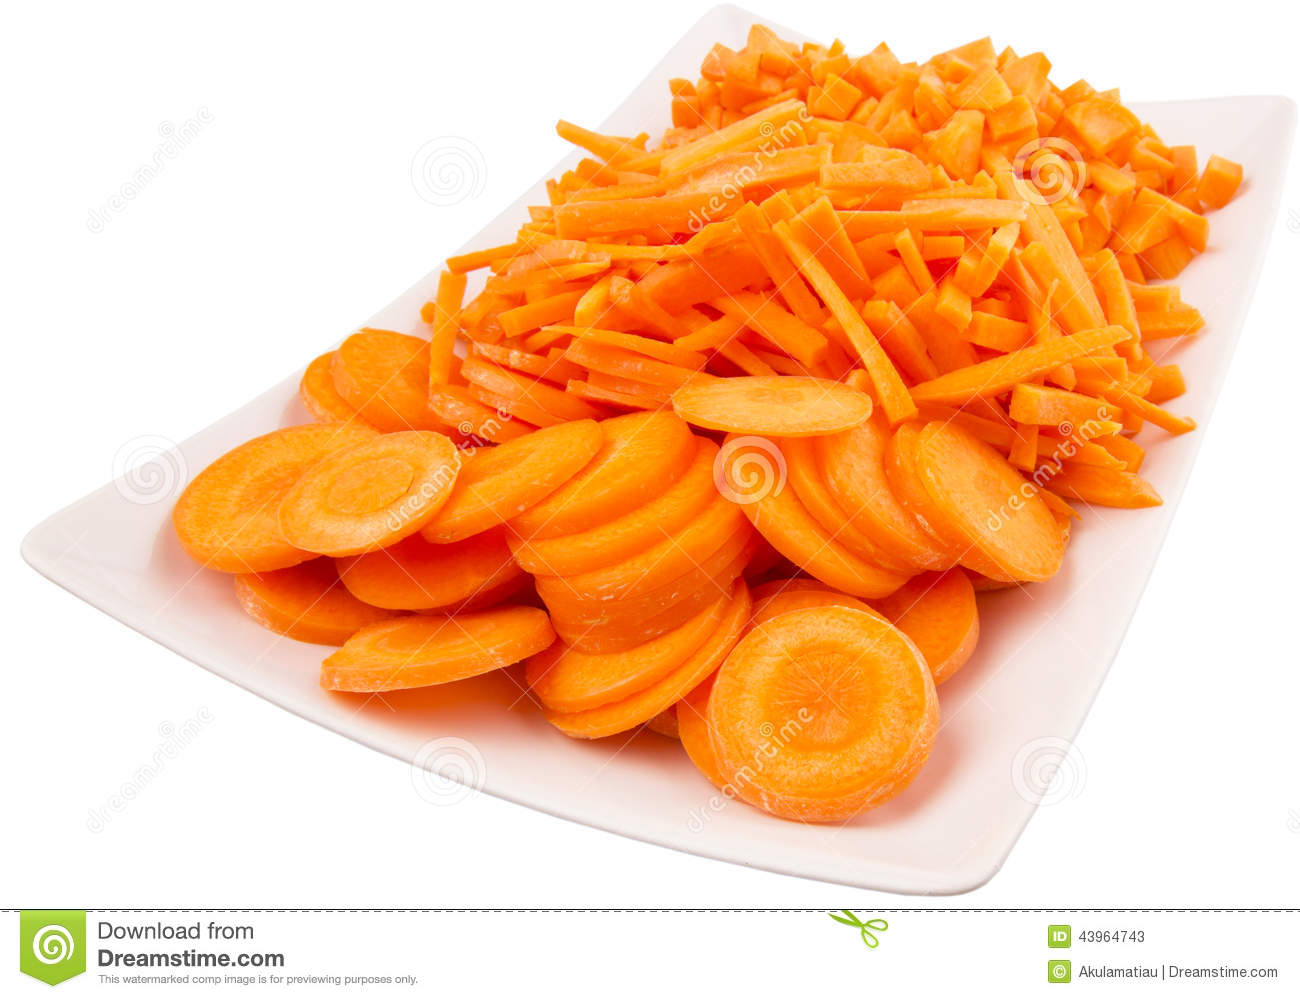 chopped carrots - photo #46